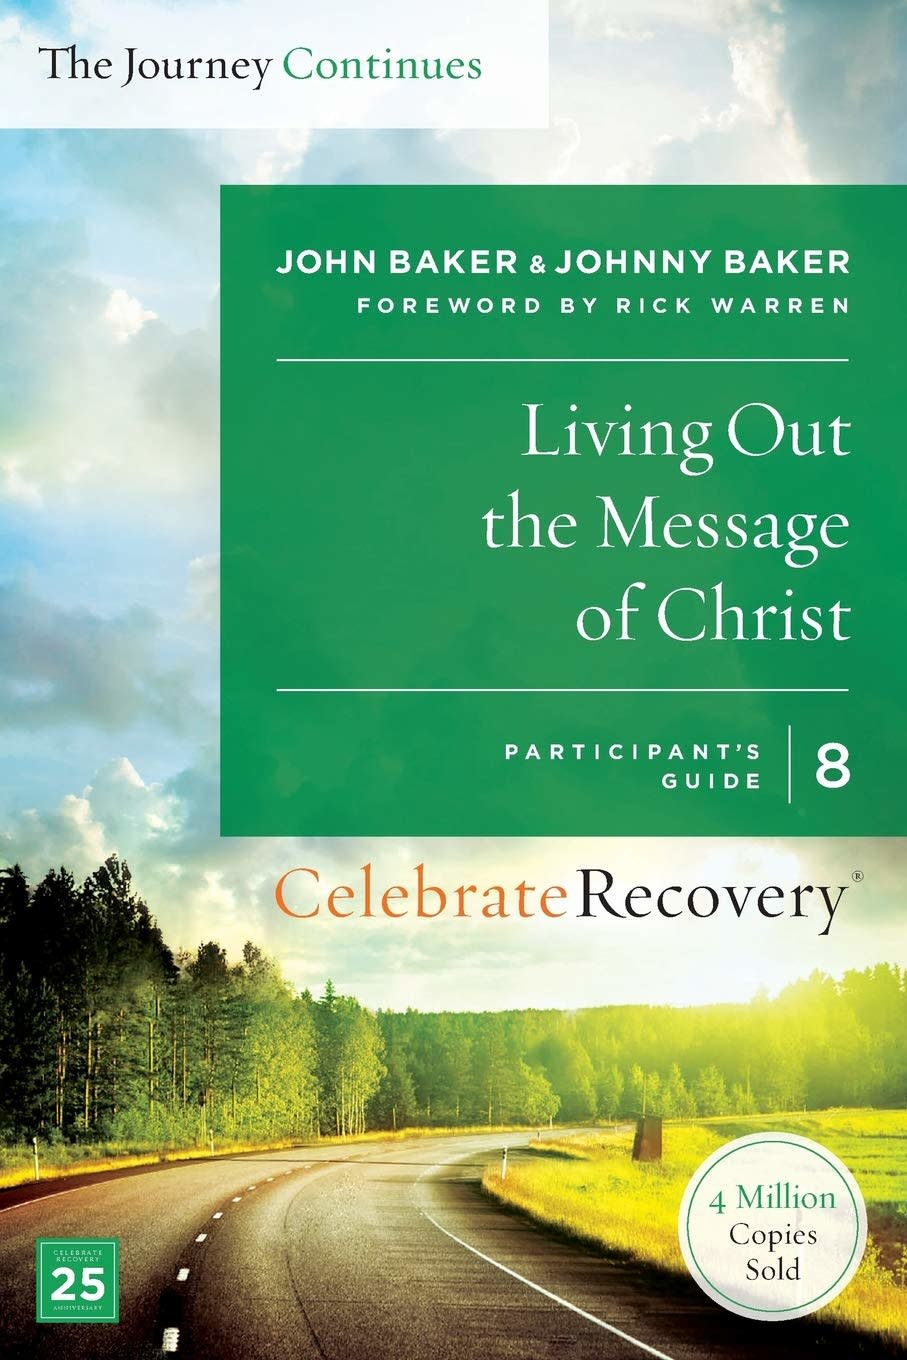 Celebrate Recovery The Journey Continues 08-Living Out the Message of Christ